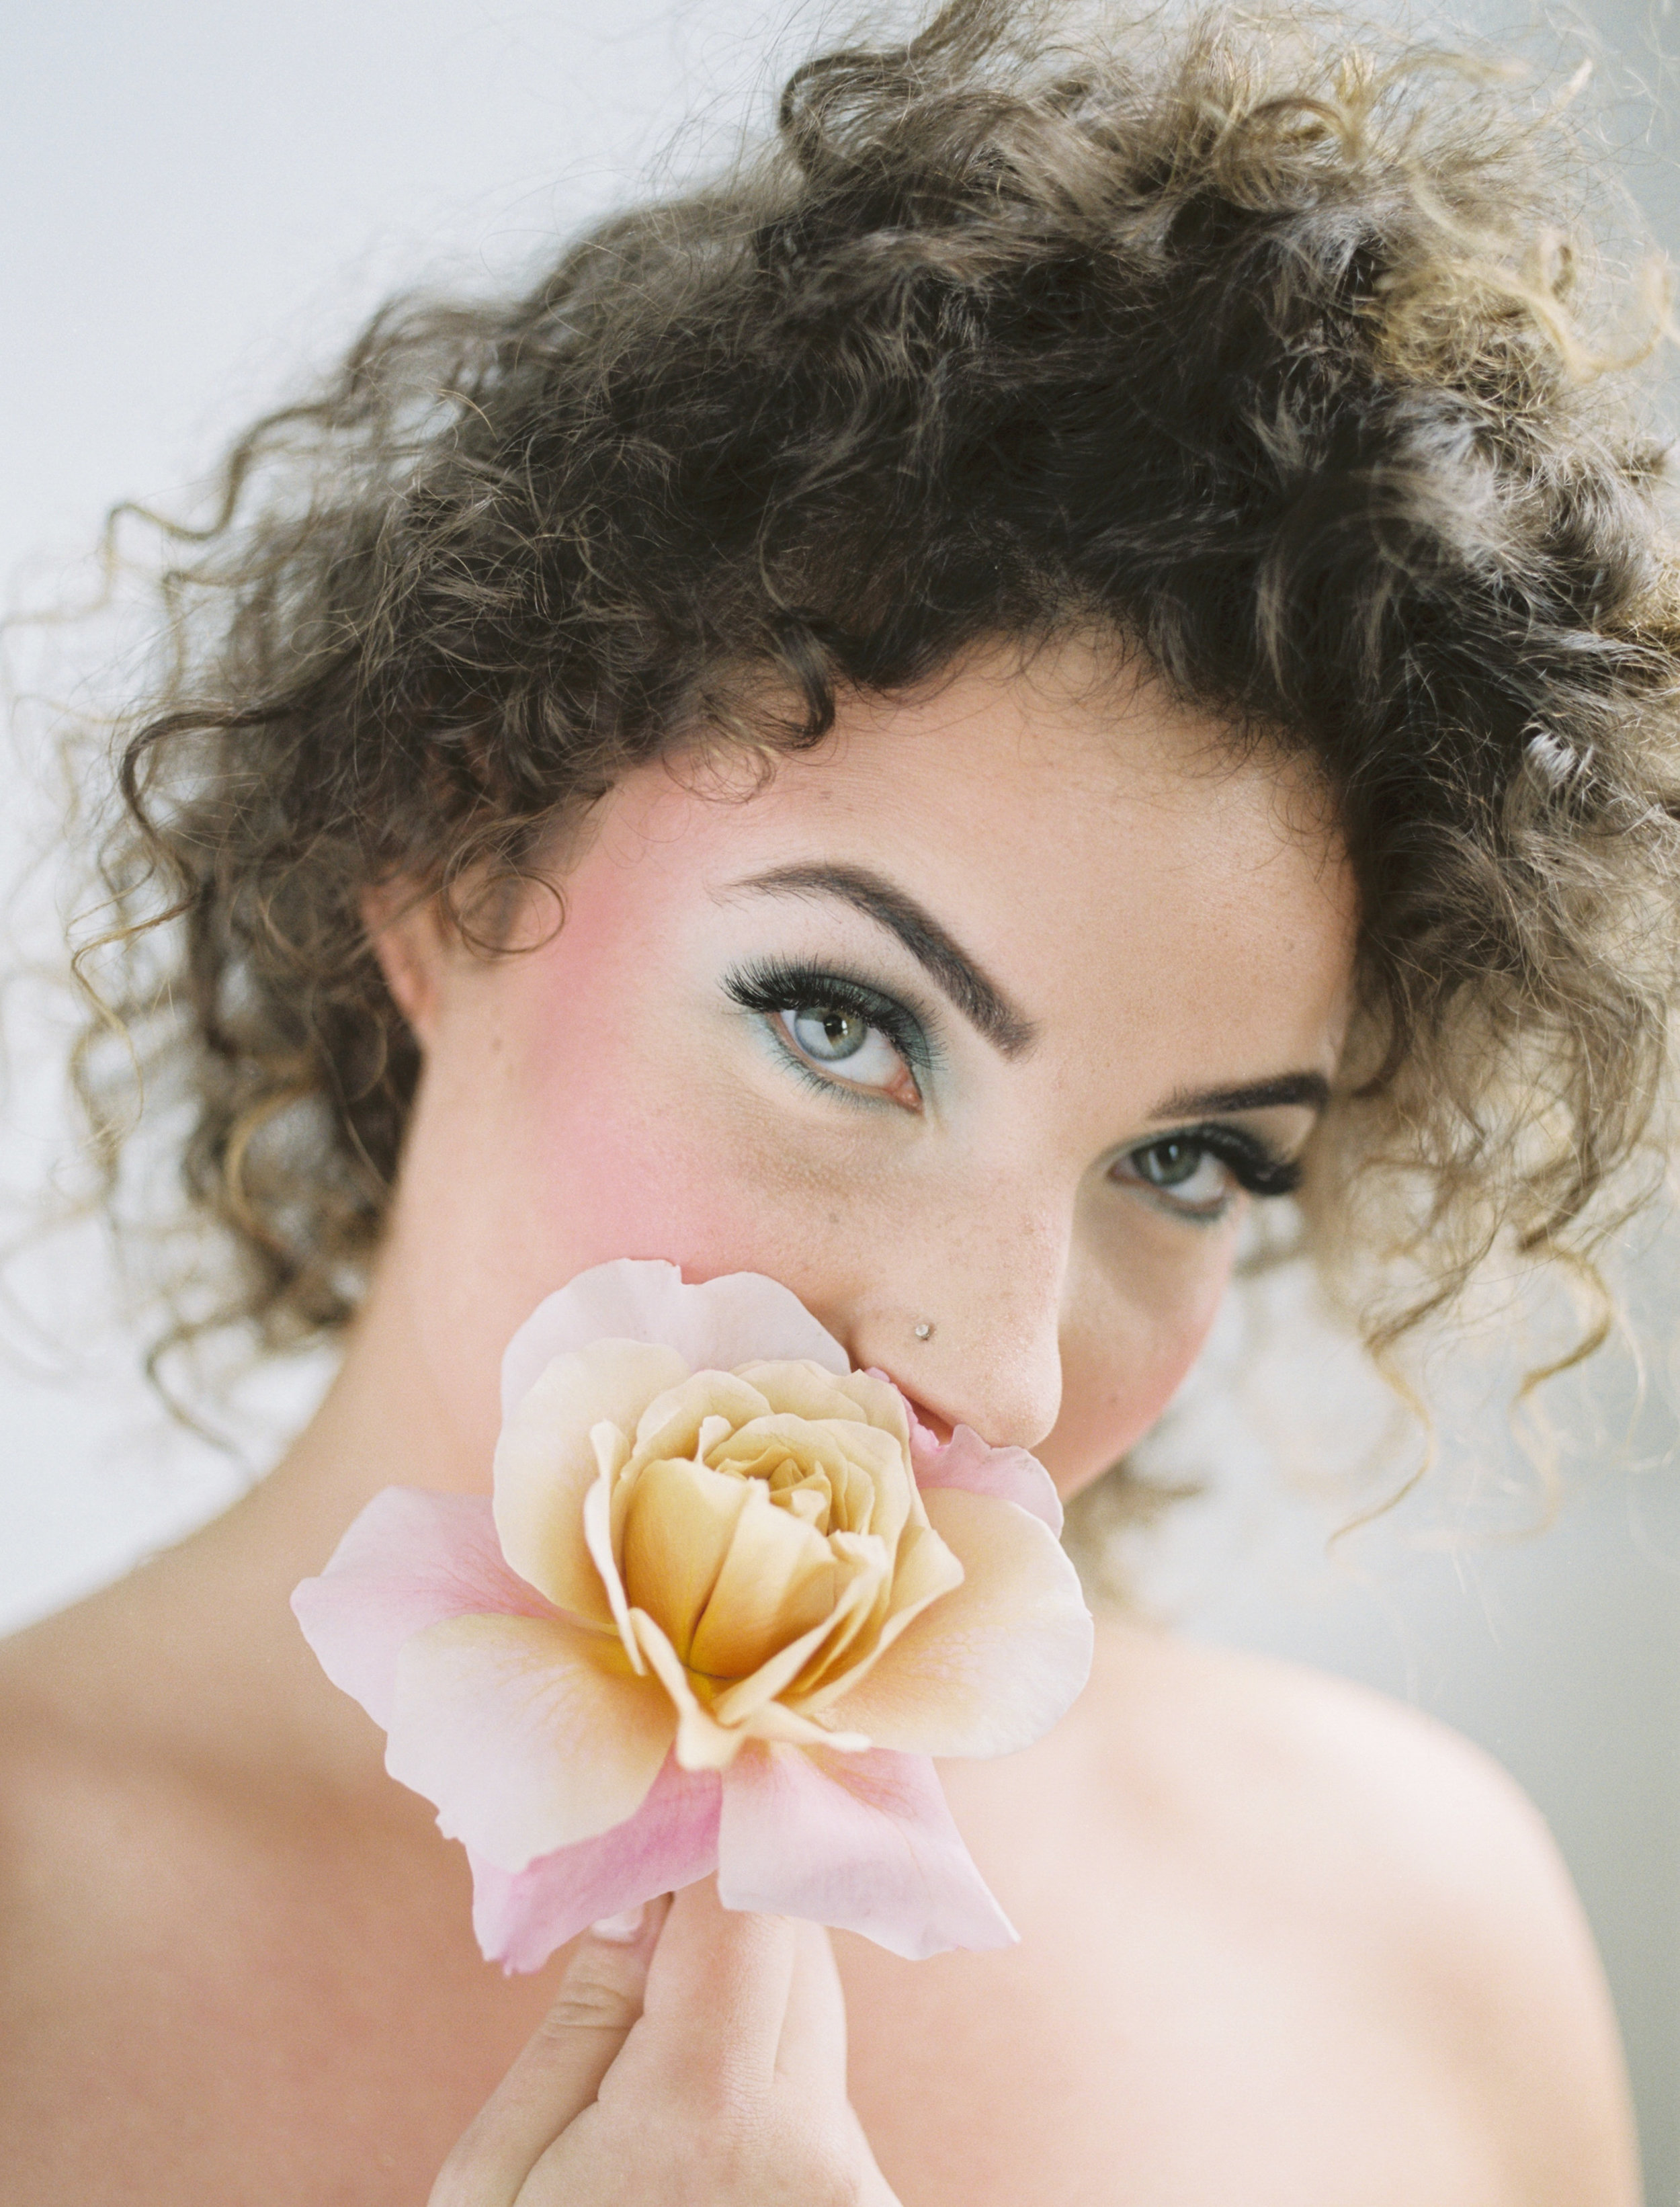 Inspiration and ideas for wearing fresh flowers in your hair for brides, weddings, or any event from livingforaged.com